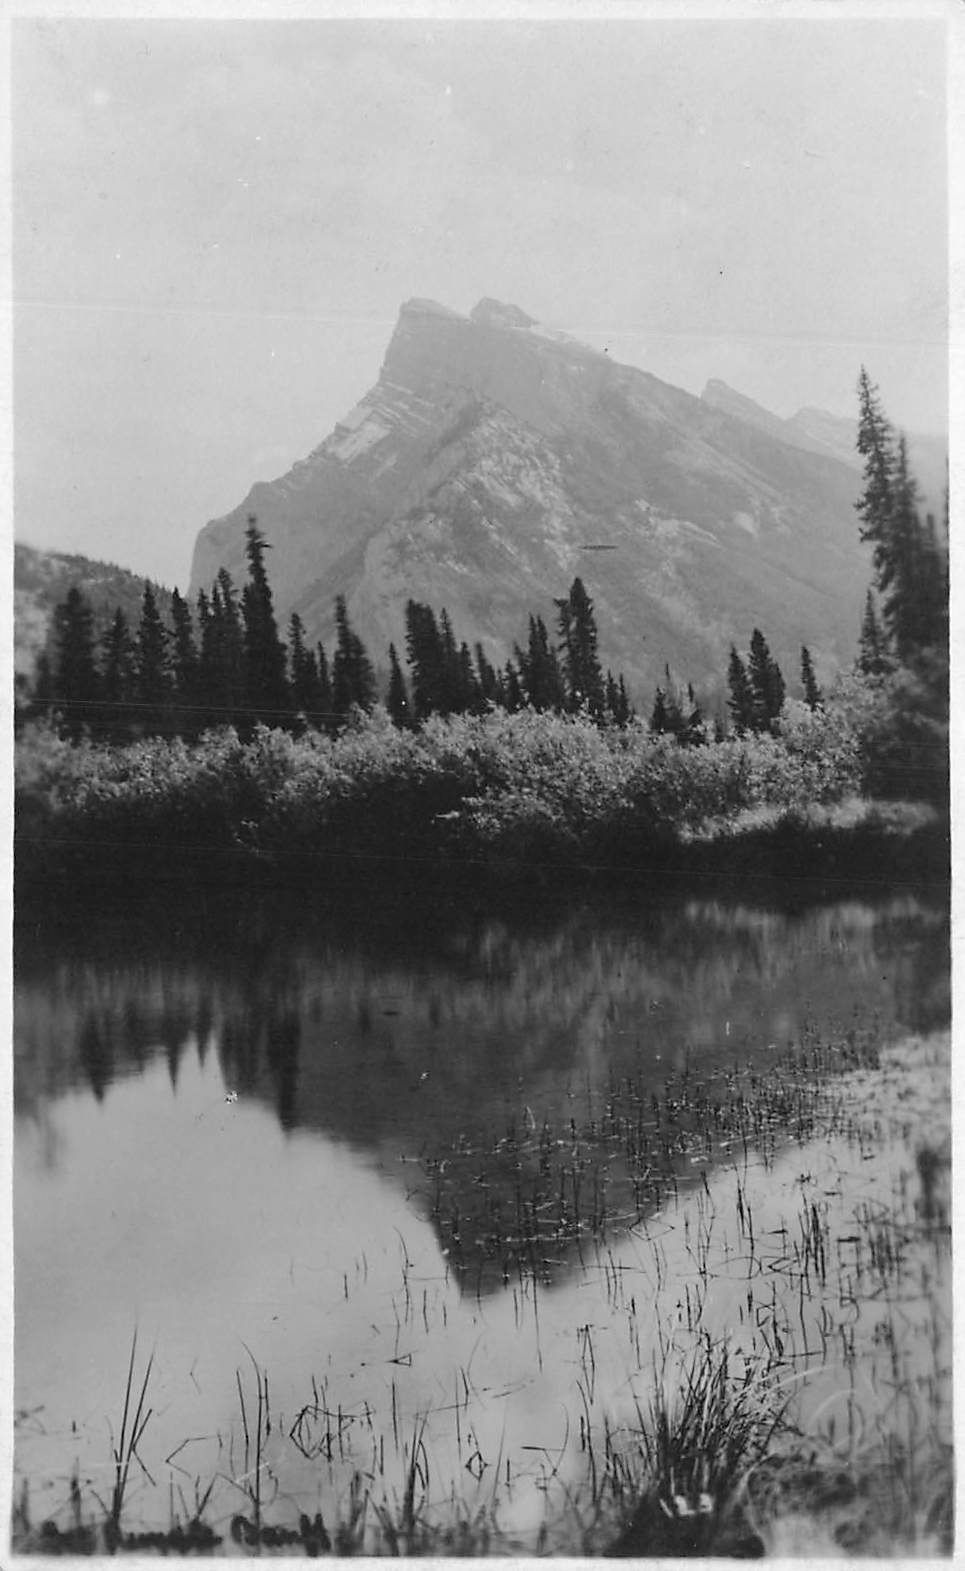 Banff, AB. RPPC Postcard. Mount Rundle. Noble Photo. Canada